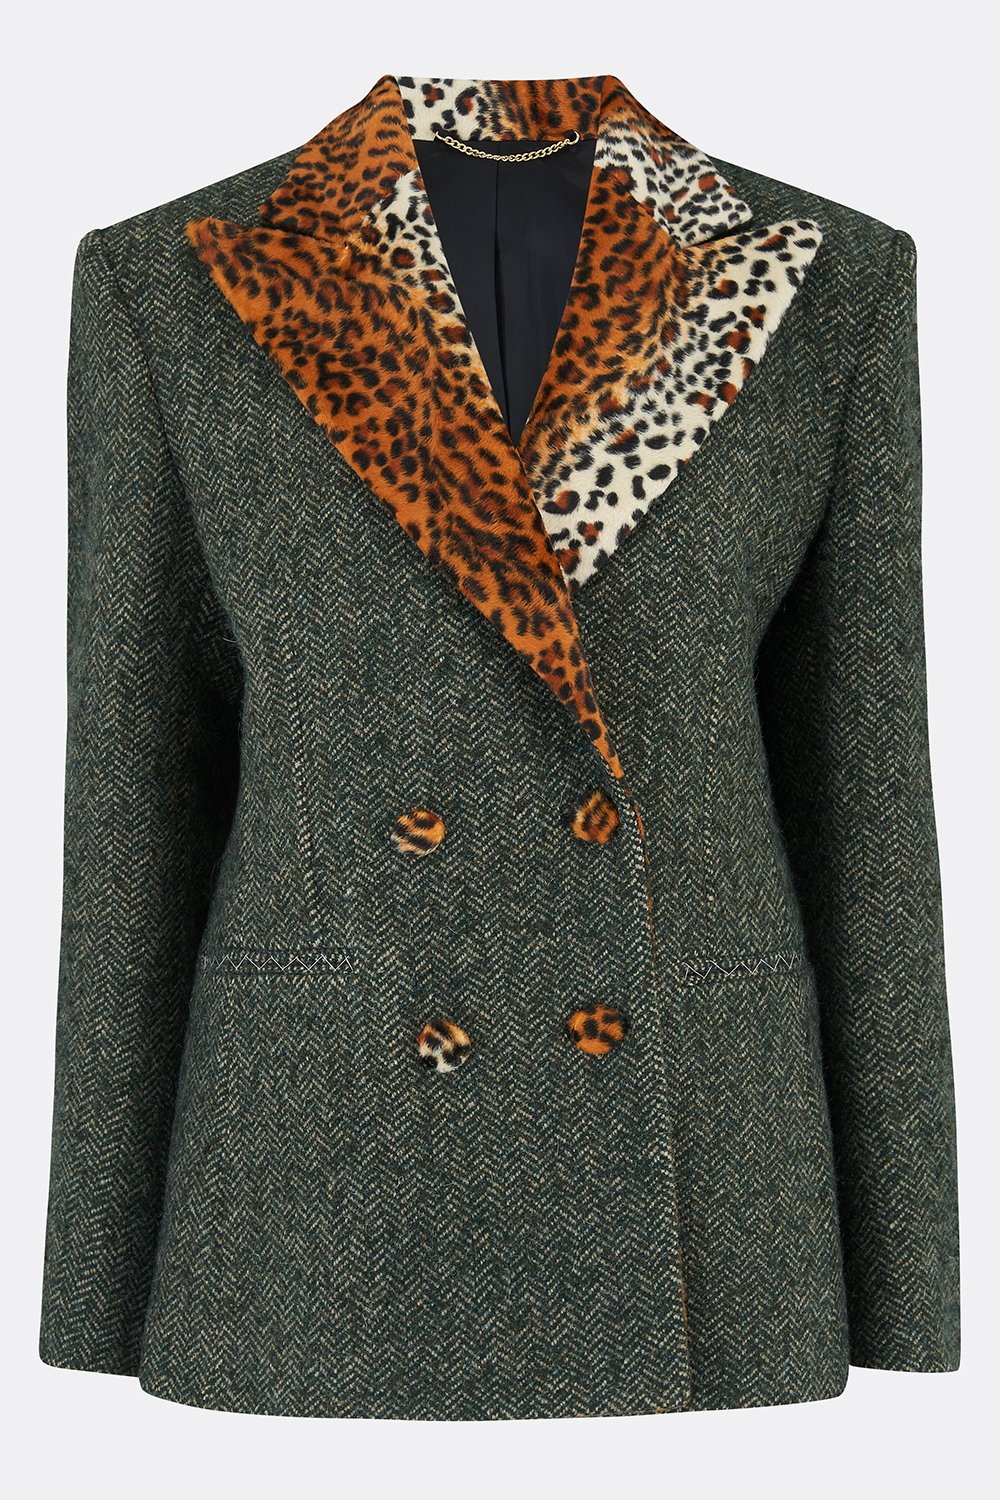 ROXANA JACKET IN HERRINGBONE TWEED-womenswear-A Child Of The Jago